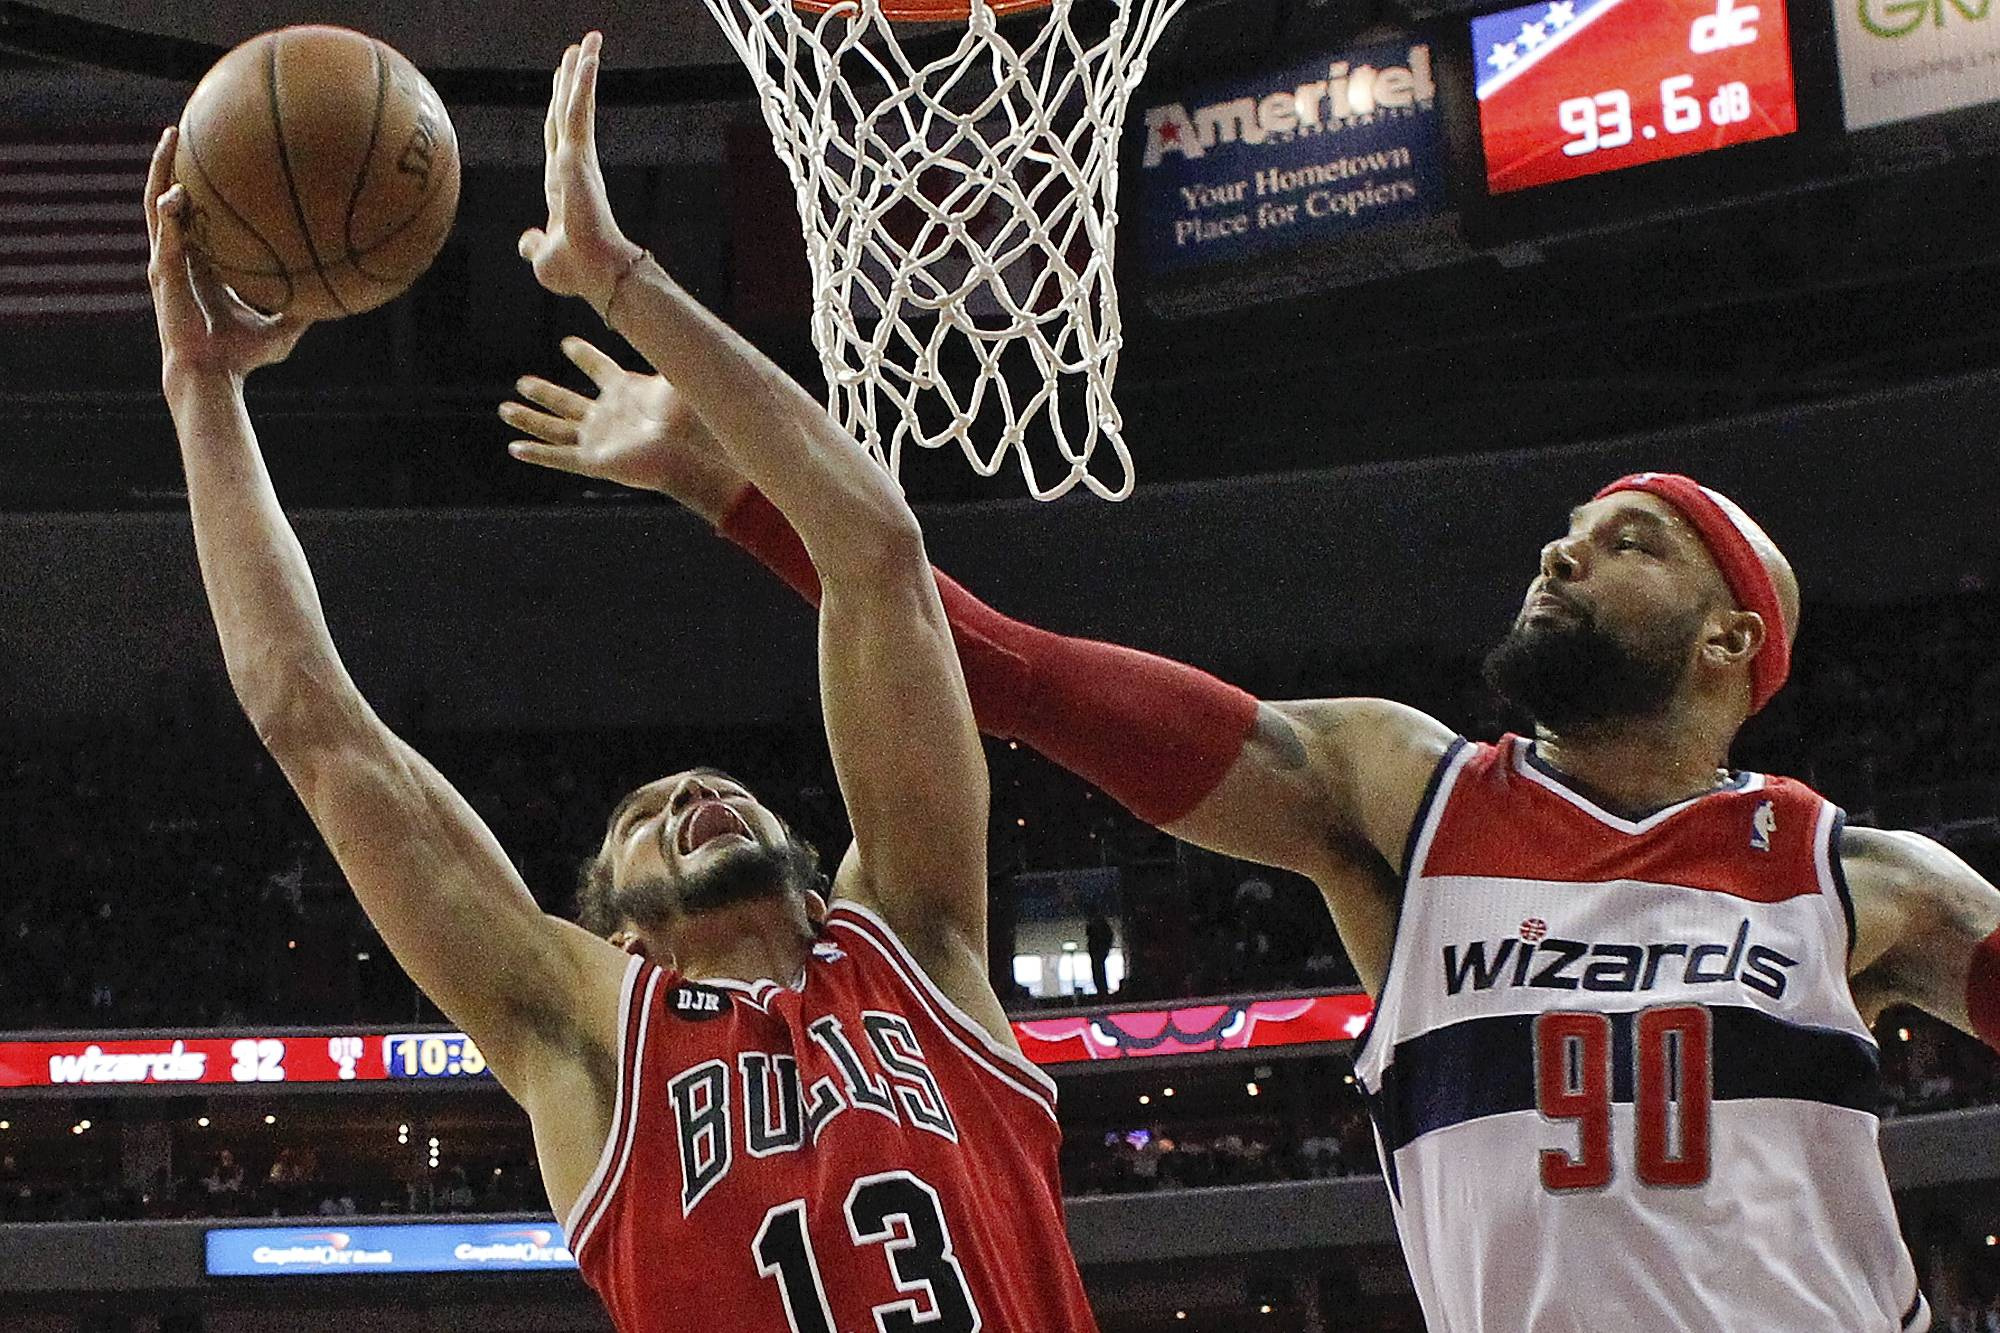 Chicago Bulls center Joakim Noah (13) shoots under pressure from Washington Wizards forward Drew Gooden (90) during the first half.